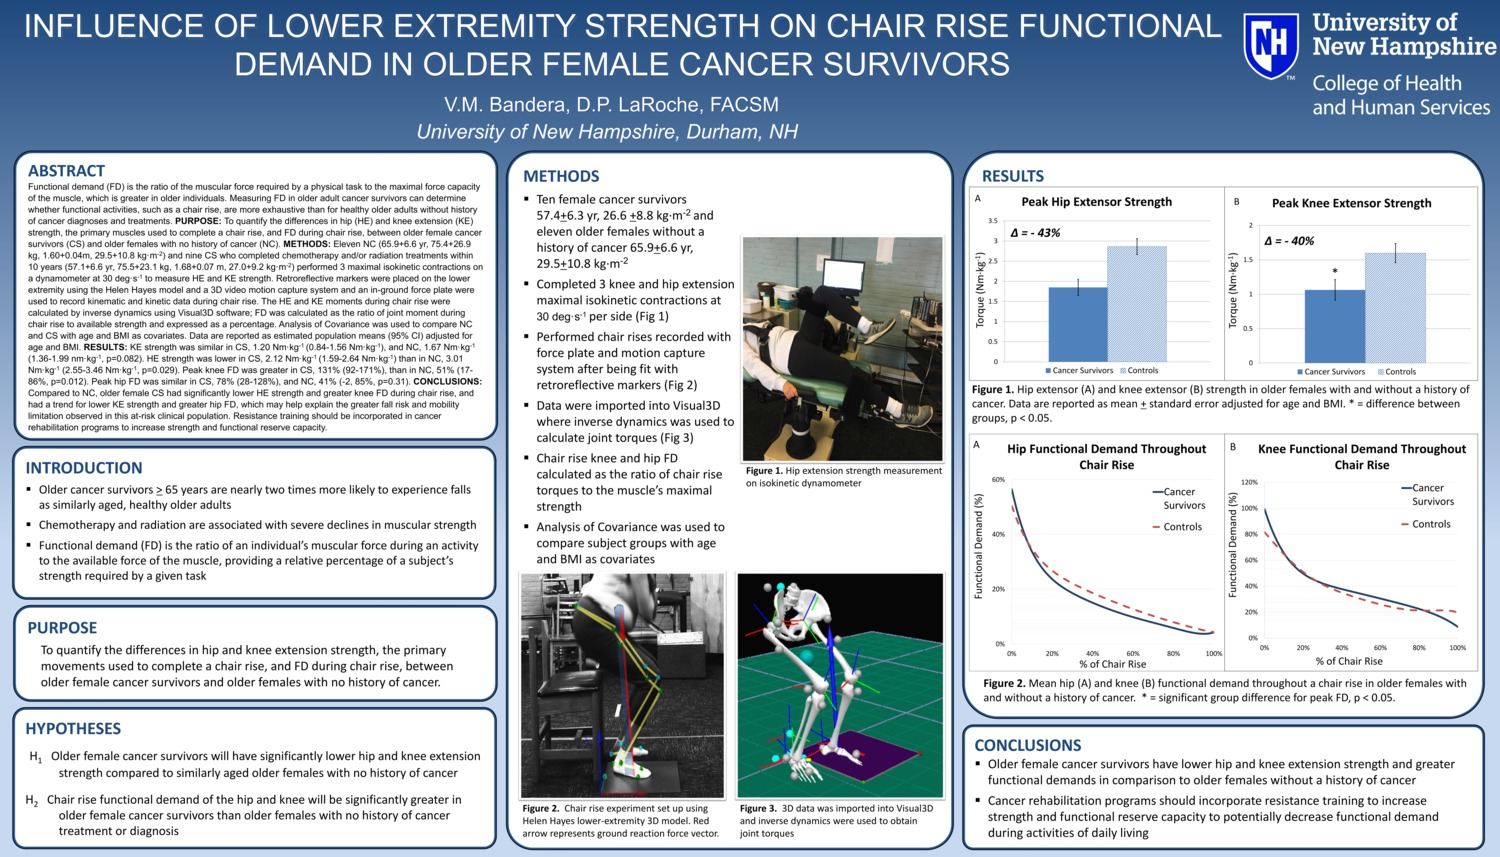 Influence Of Lower Extremity Strength On Chair Rise Functional Demand In Older Female Cancer Survivors  by vmb1005